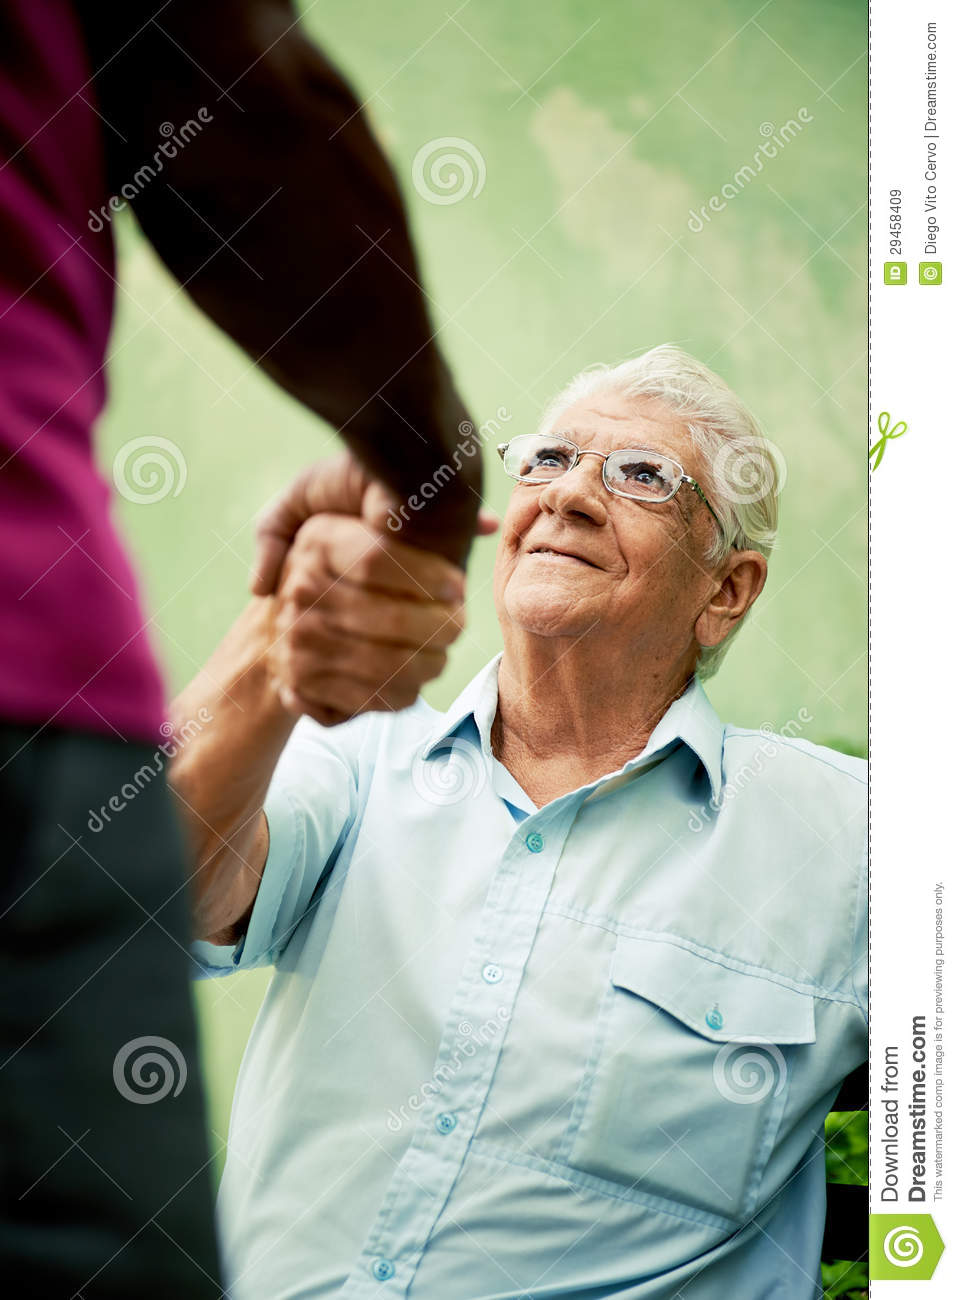 Incredible Old Black And Caucasian Men Meeting And Shaking Hands In Evergreenethics Interior Chair Design Evergreenethicsorg